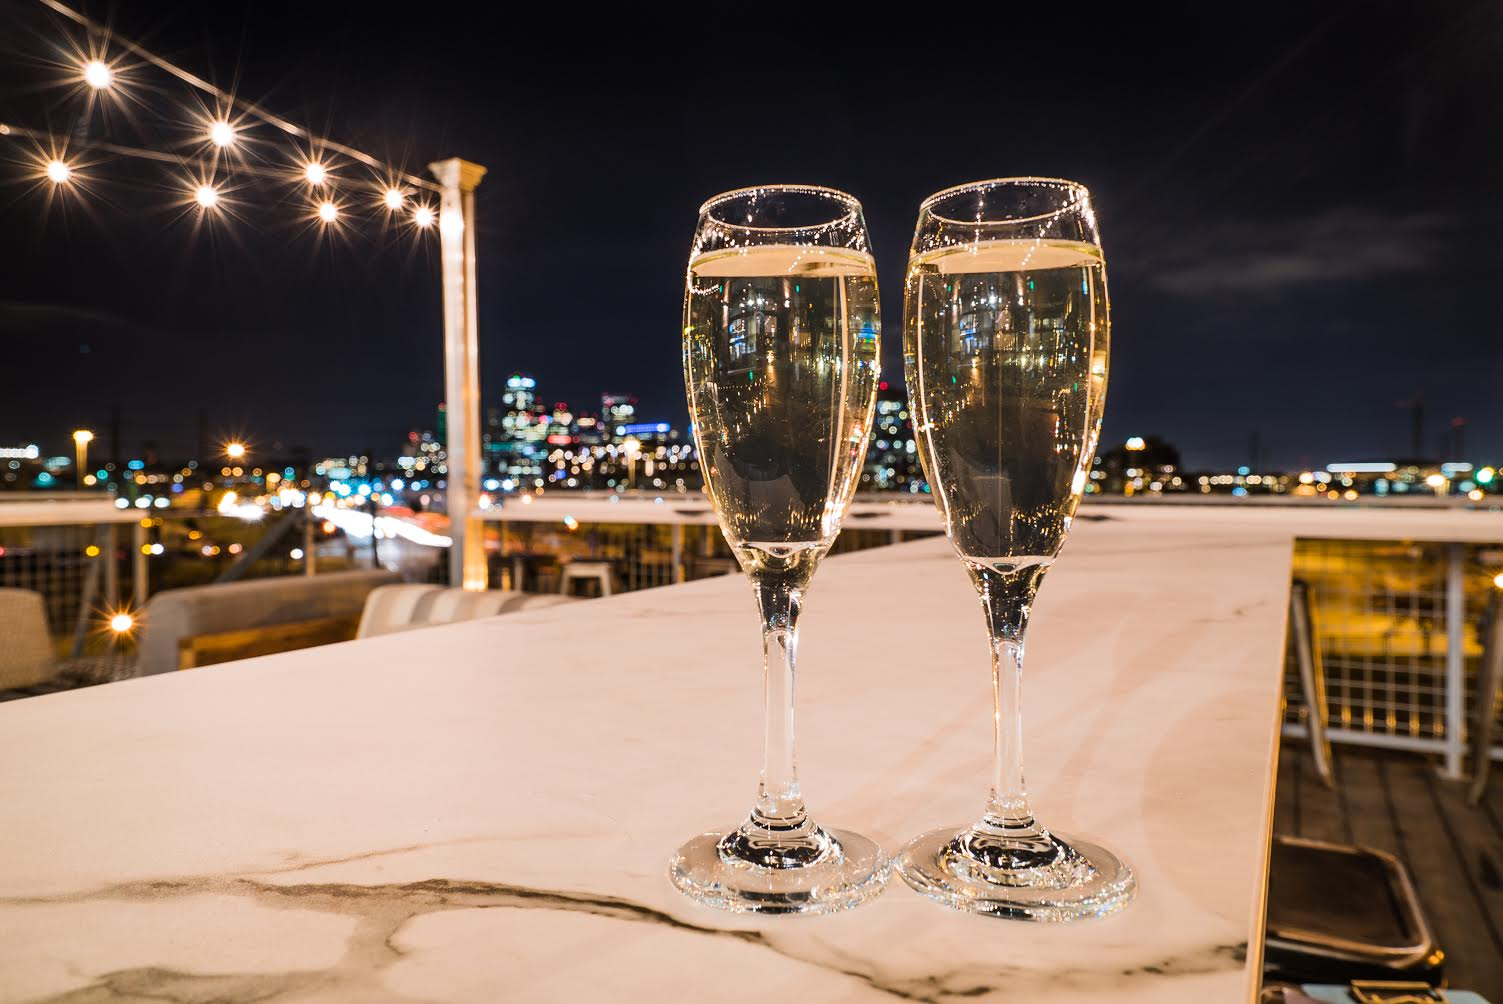 where to spend NYE denver, NYE 2015, Restaurants open on new years denver 2015